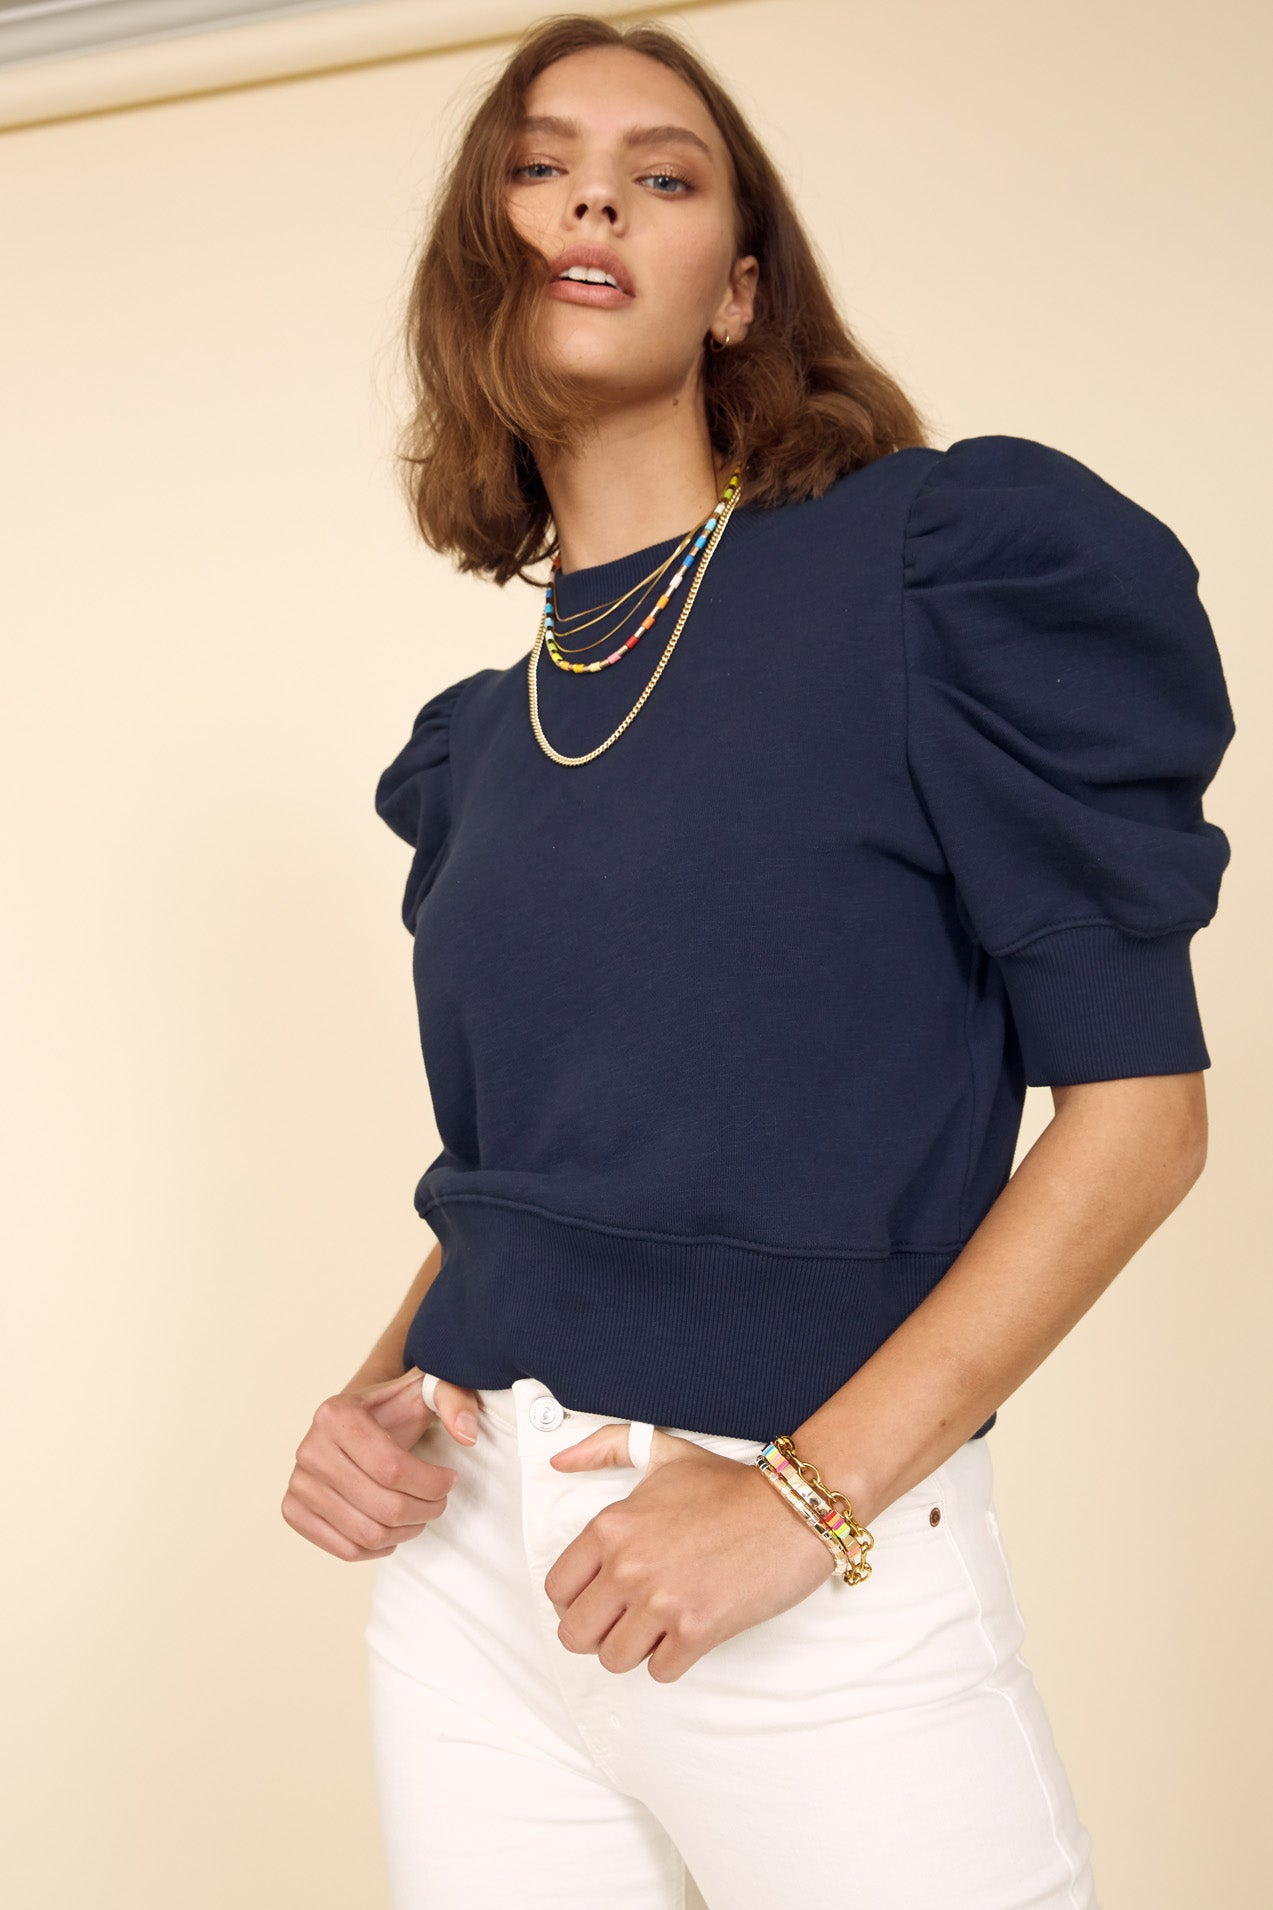 The Just Enough Puff Short Sleeve Sweatshirt in Navy